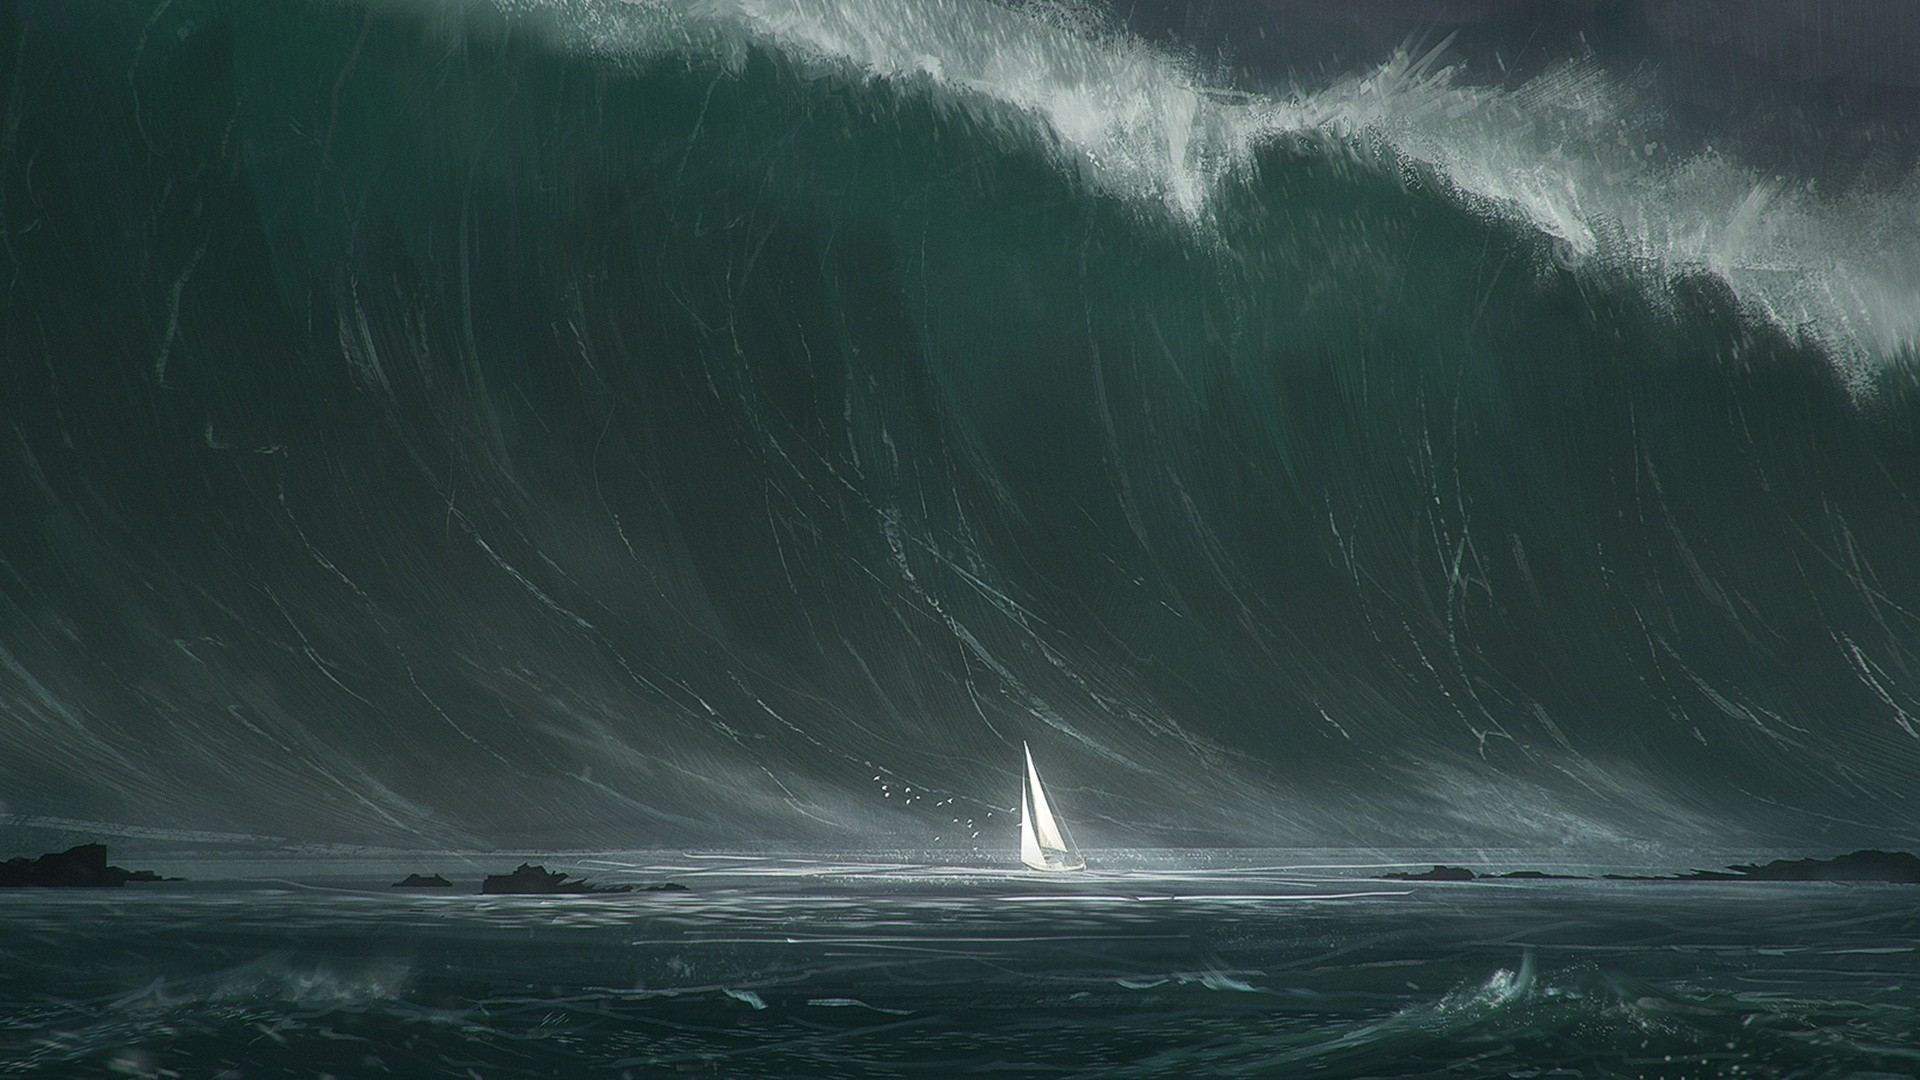 1920x1080 Explore Stormy Sea, Ocean Waves, and more!